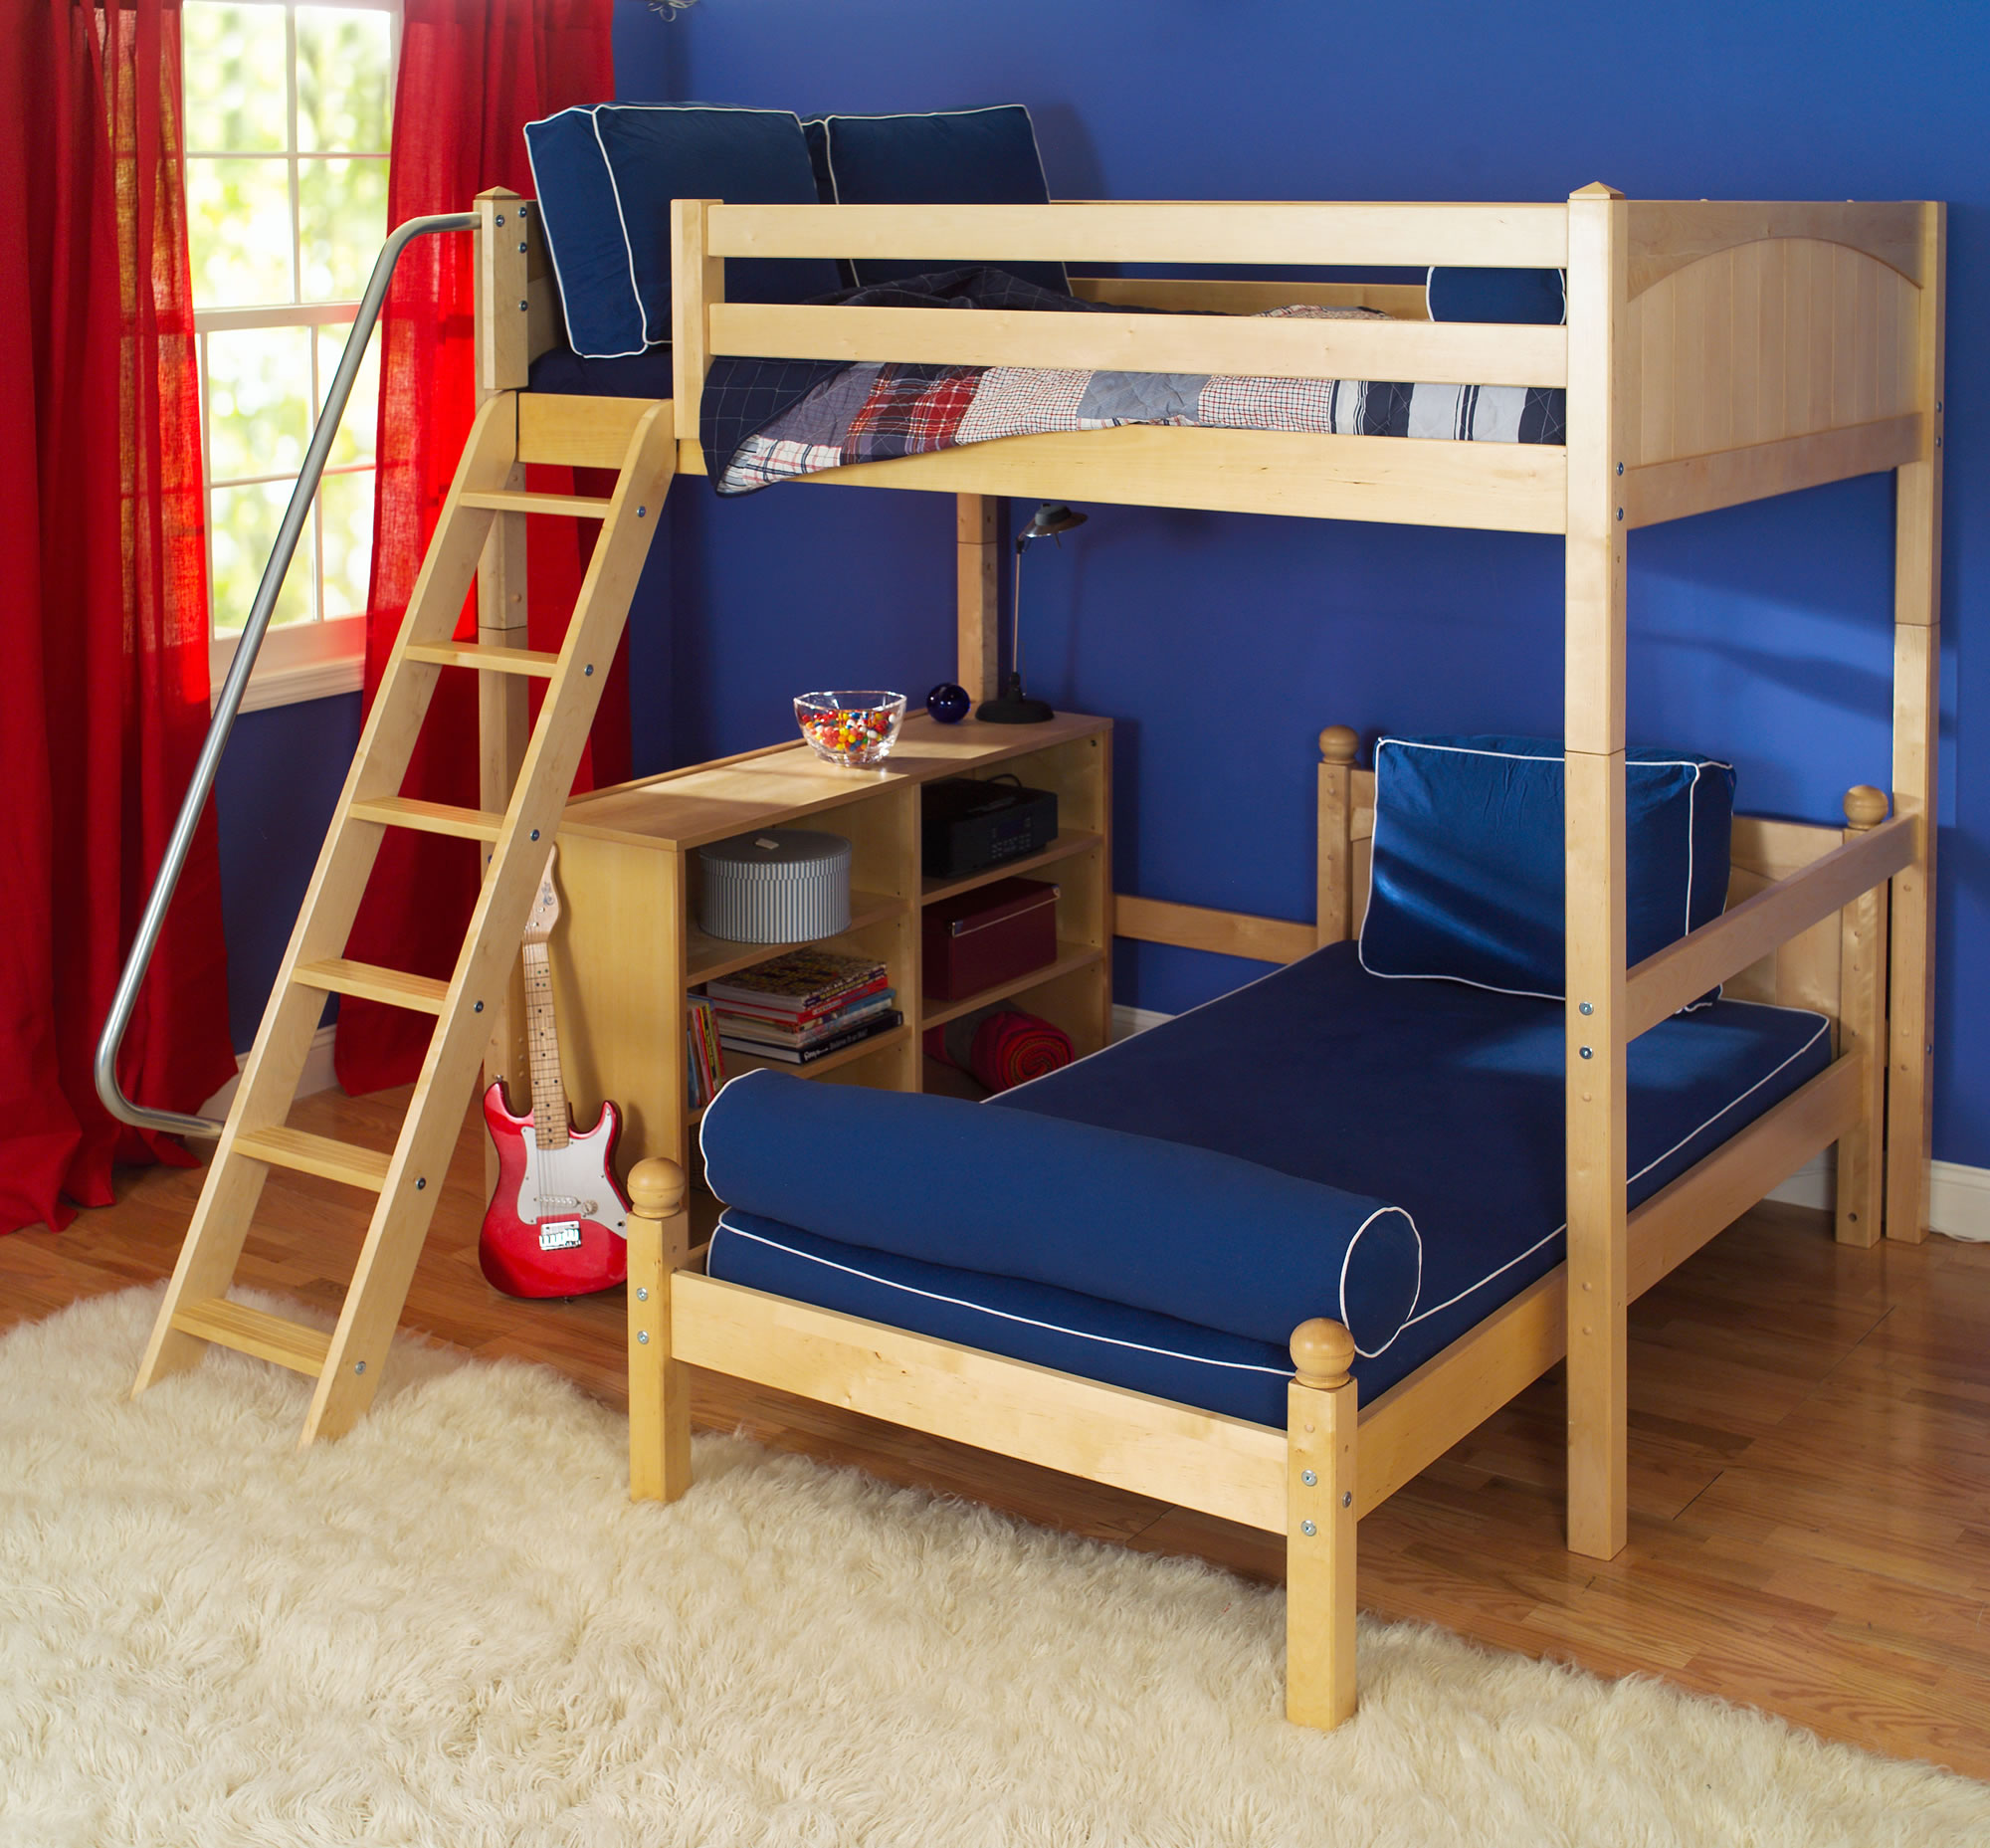 L Shaped Bunk Bed Plans Bed Plans Diy Amp Blueprints